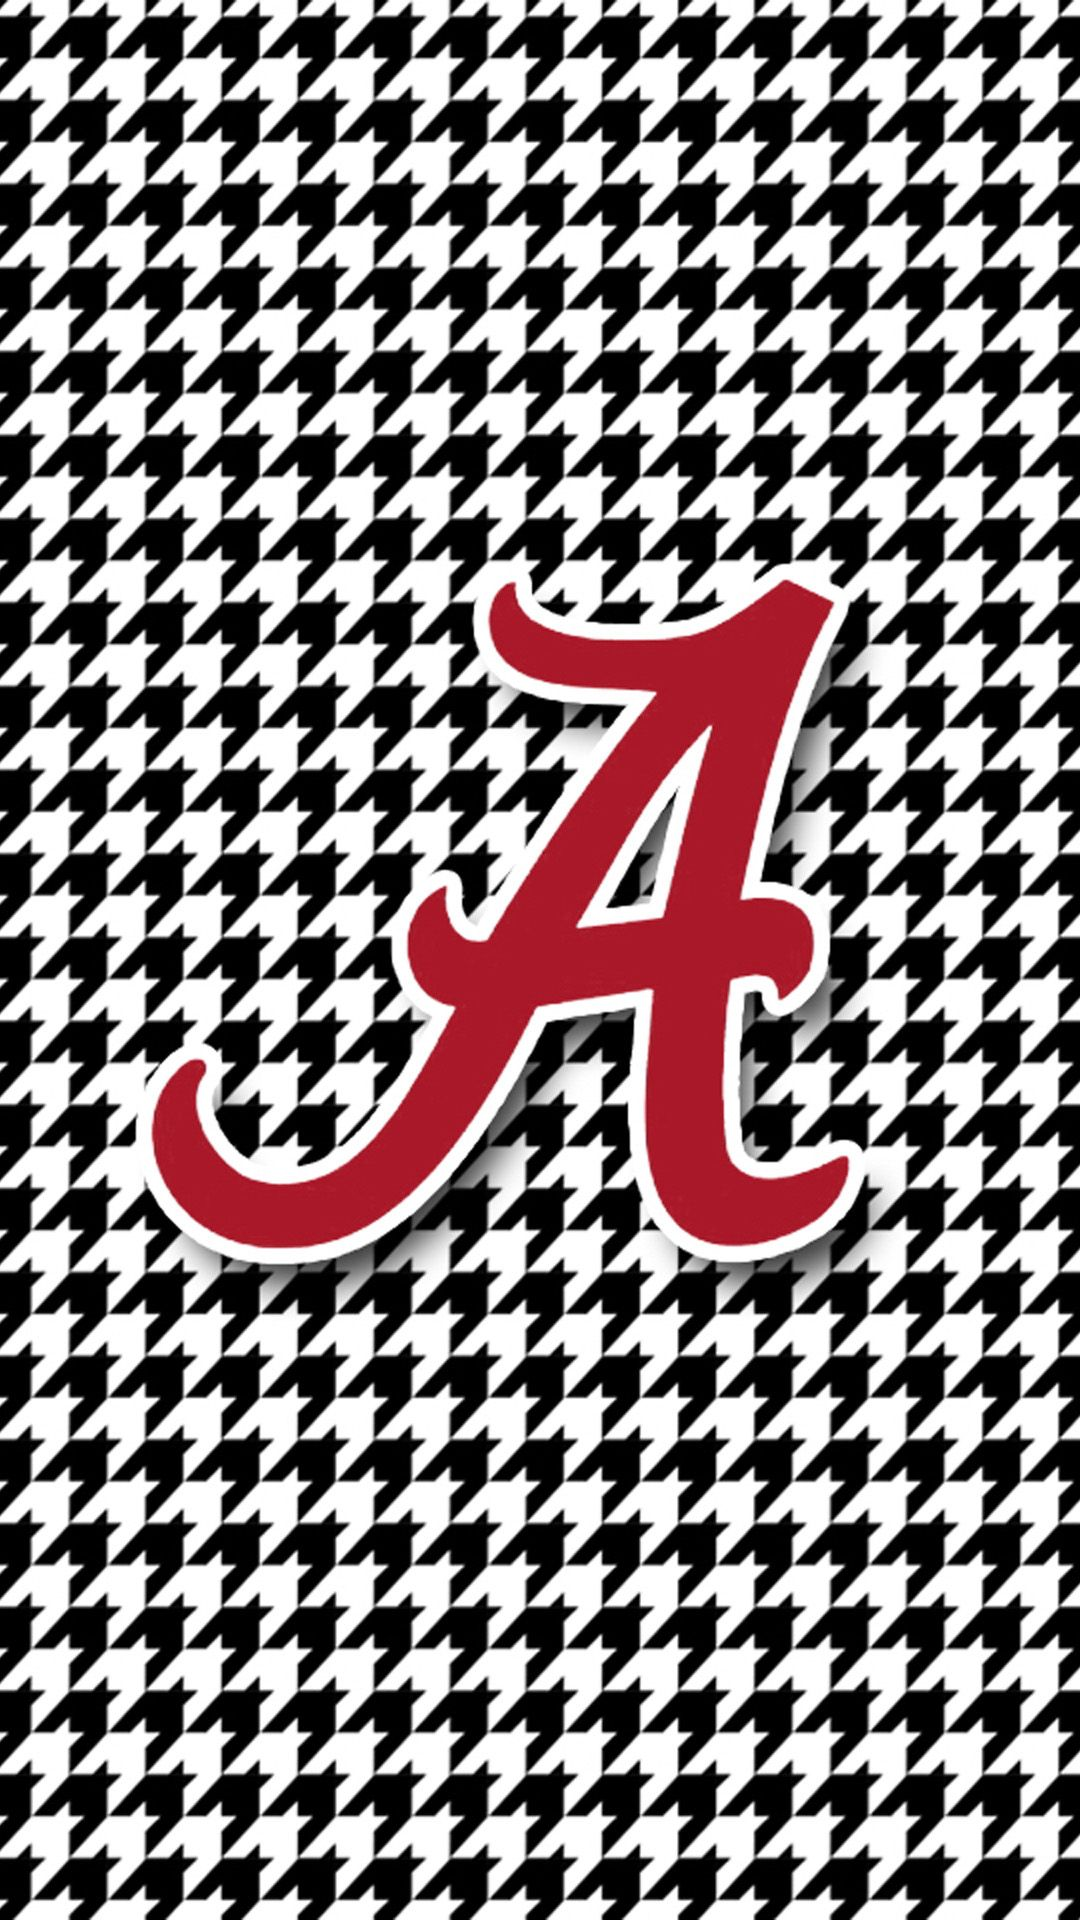 Alabama Football Wallpaper Hd For Android Pixelstalk Net Alabama Crimson Tide Logo Alabama Wallpaper Tide Logo